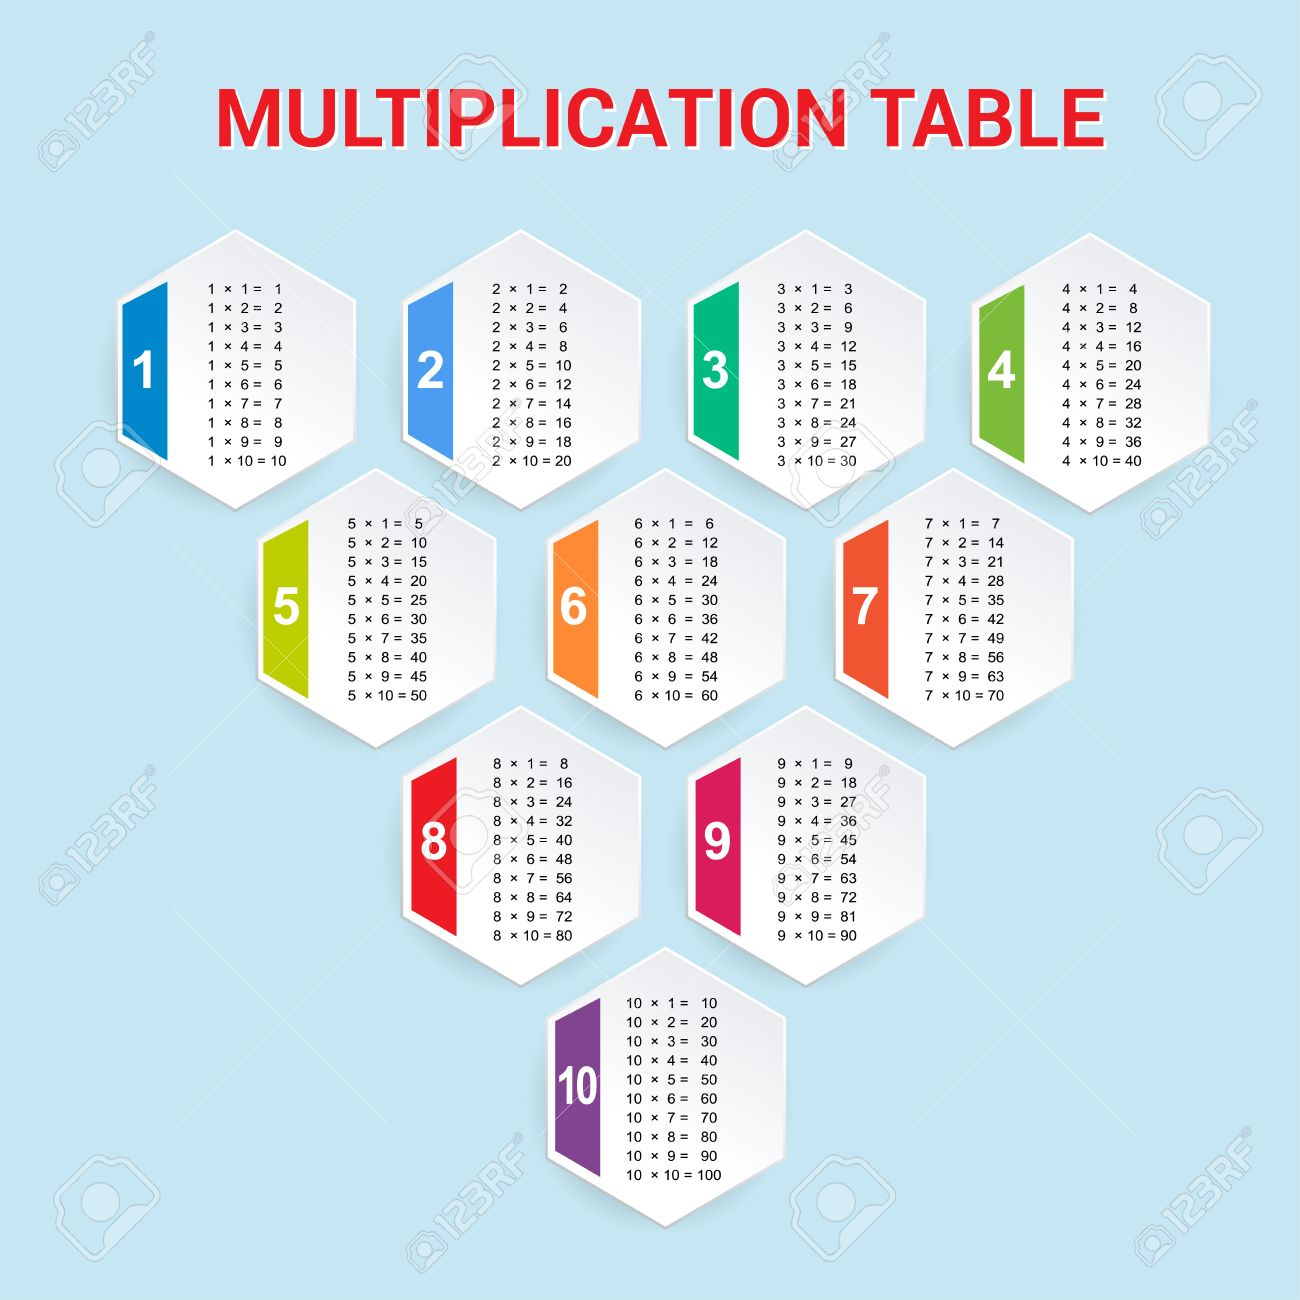 Program for multiplication table images periodic table images program for multiplication table gallery periodic table images multiplication table educational material for primary school multiplication gamestrikefo Images